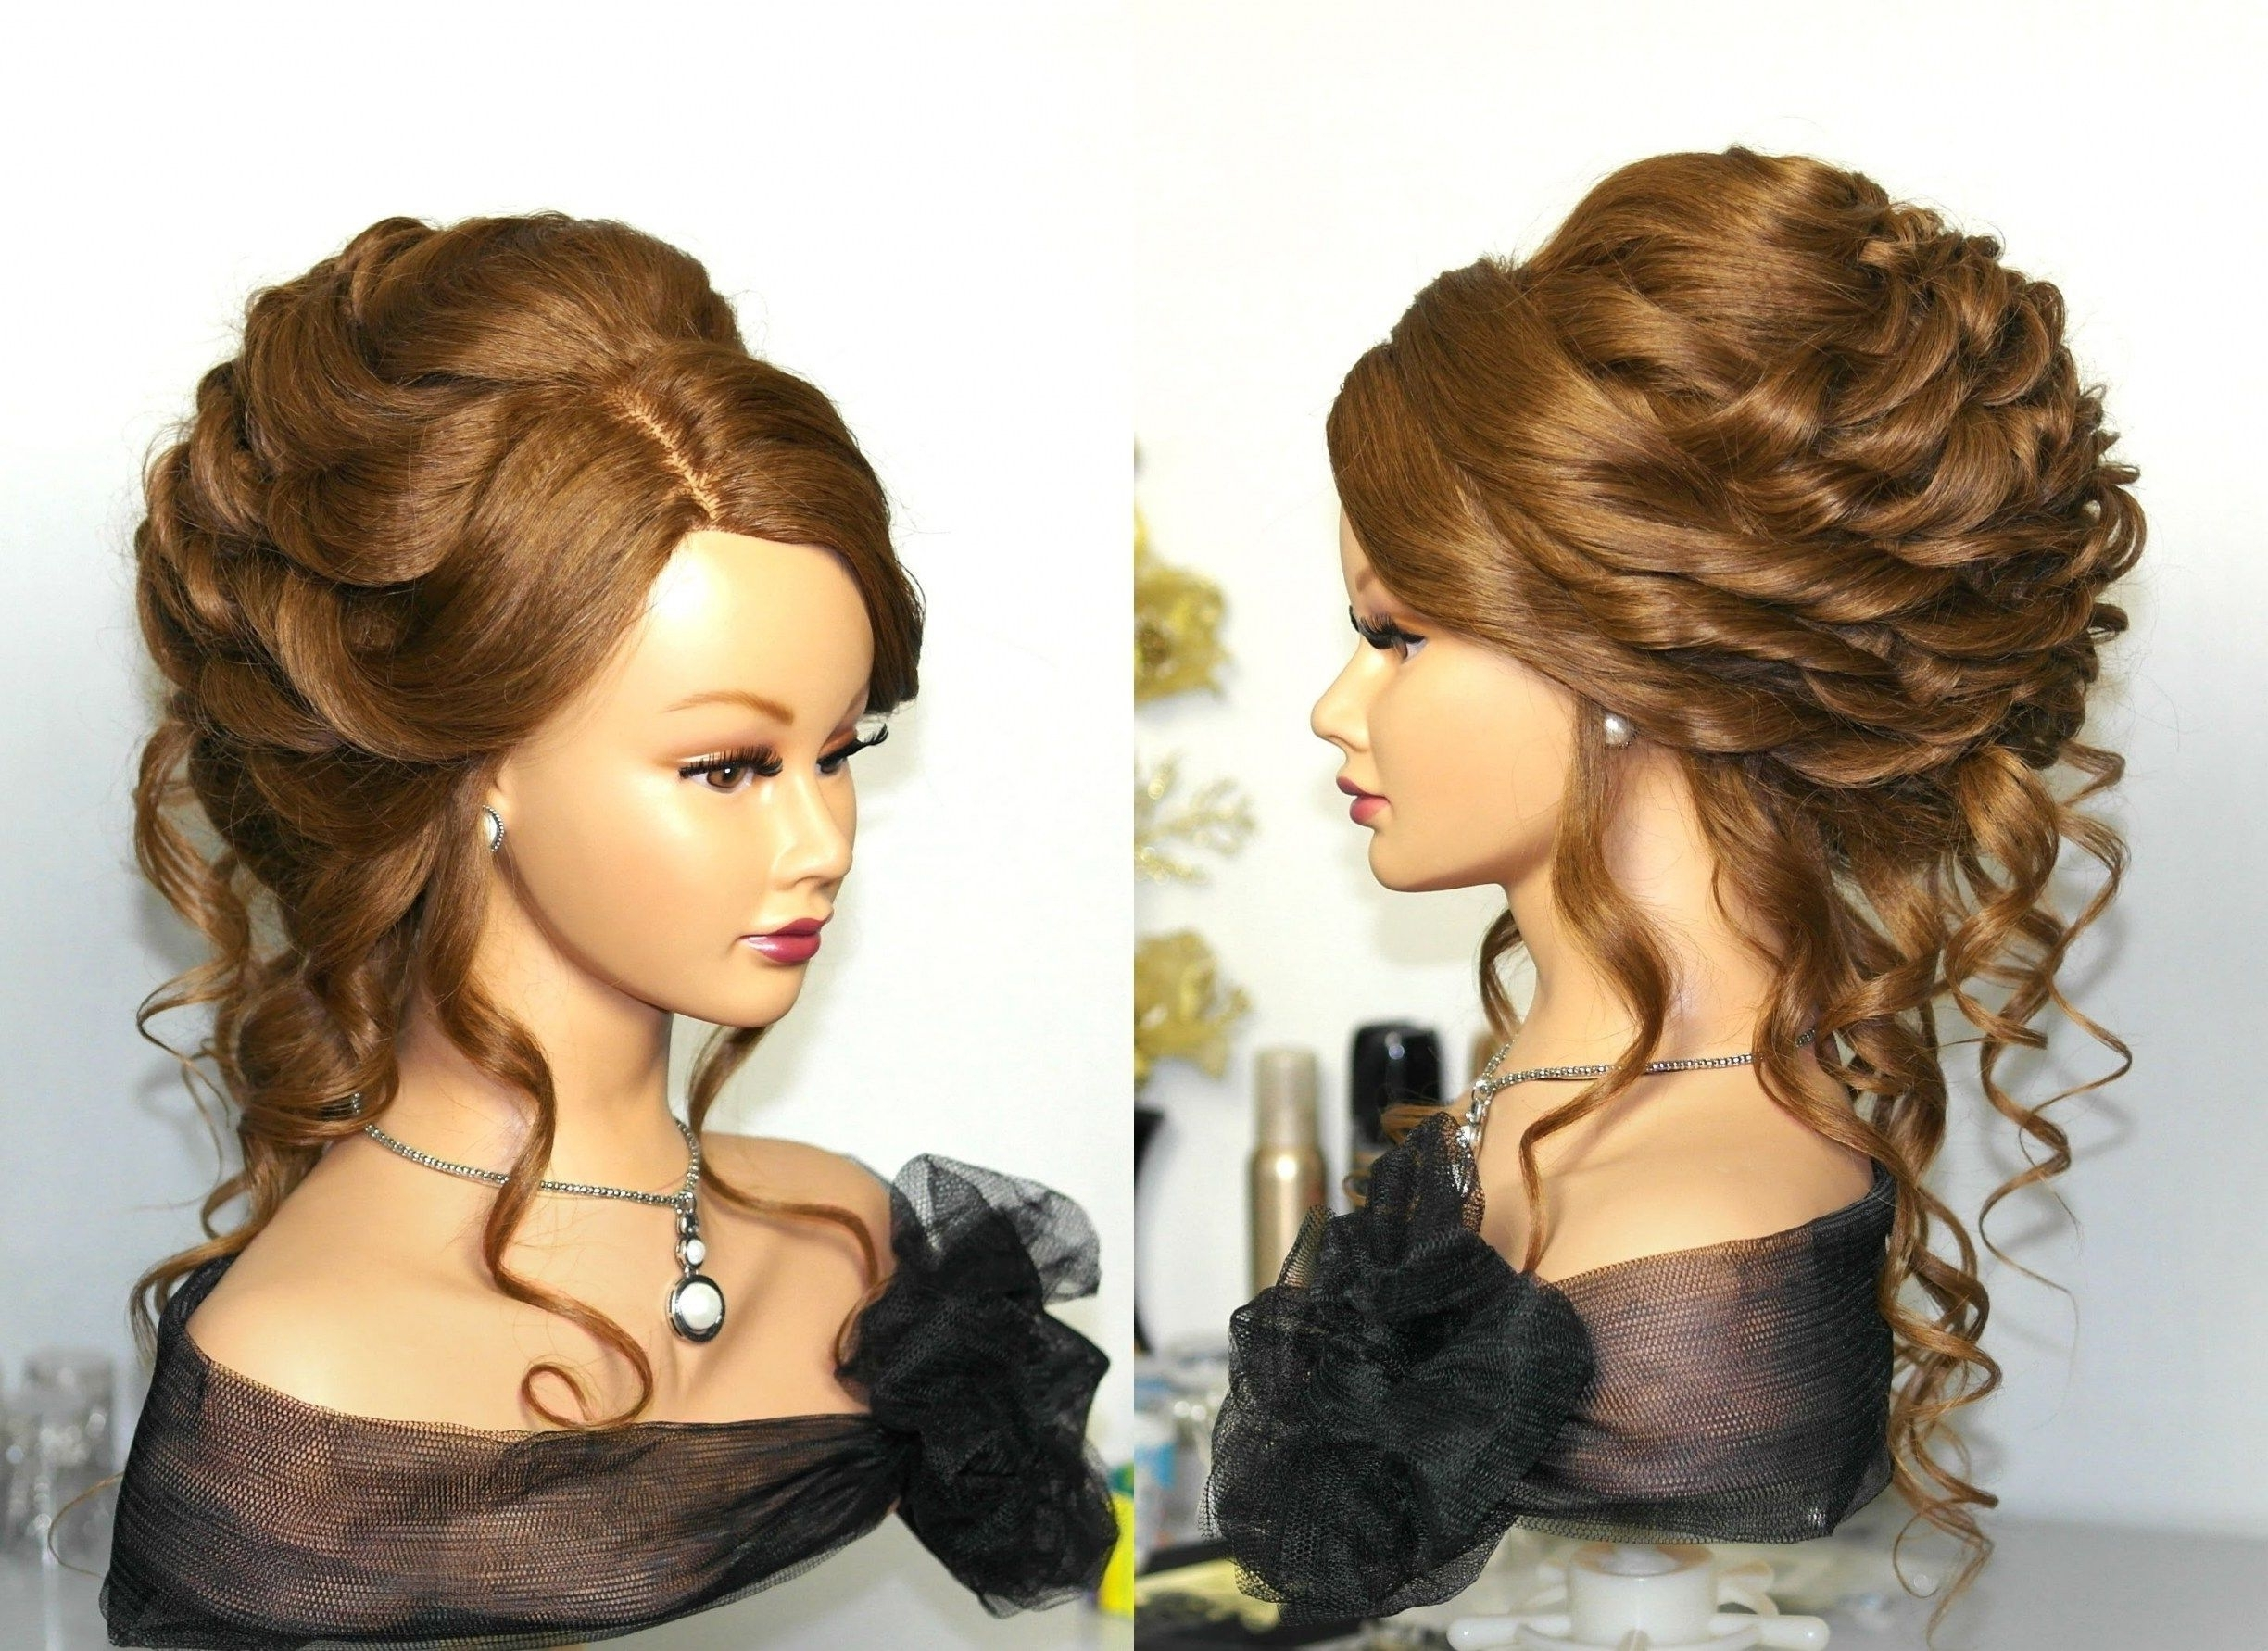 Hairstyles Ideas For Me (View 2 of 15)